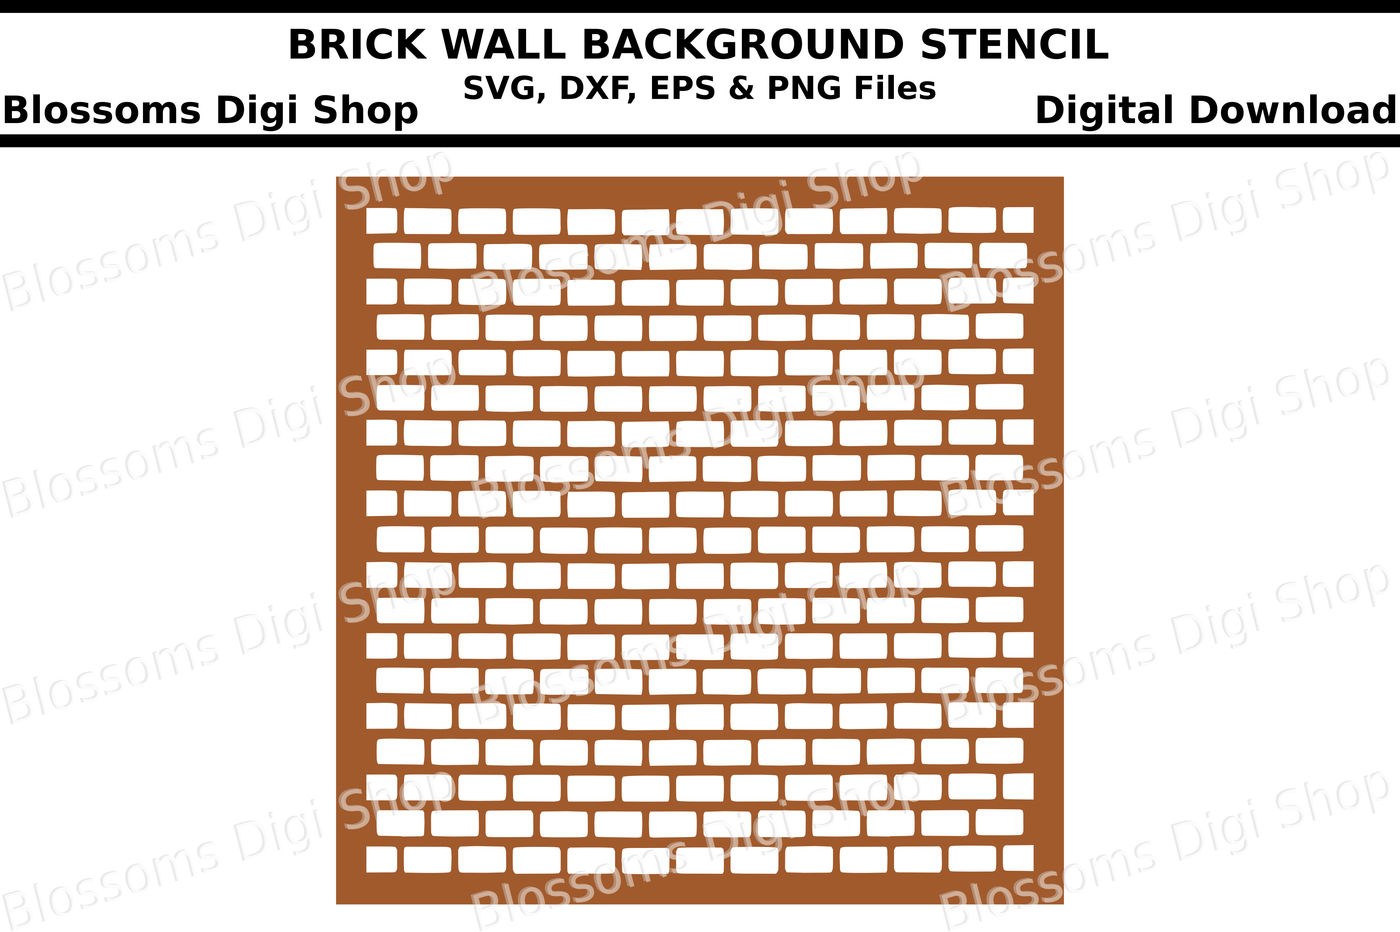 Brick wall background stencil SVG, DXF, EPS and PNG files By